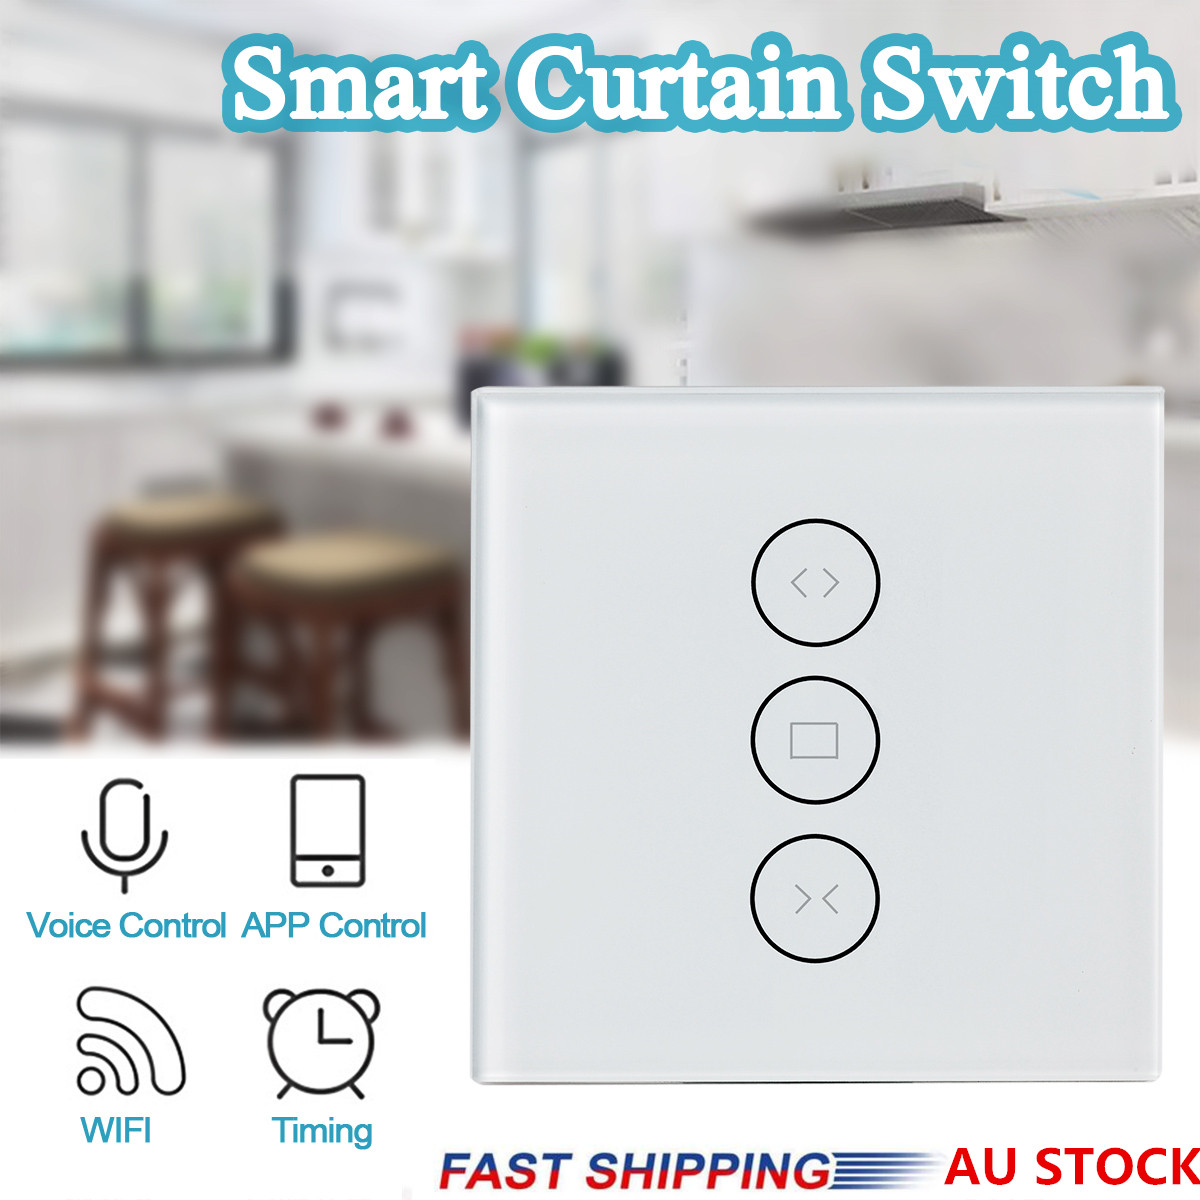 App Eu Wifi Smart Press Curtain Switch Voice Control By Alexa And Google Phone Control For Electric Motor Touch Control Work